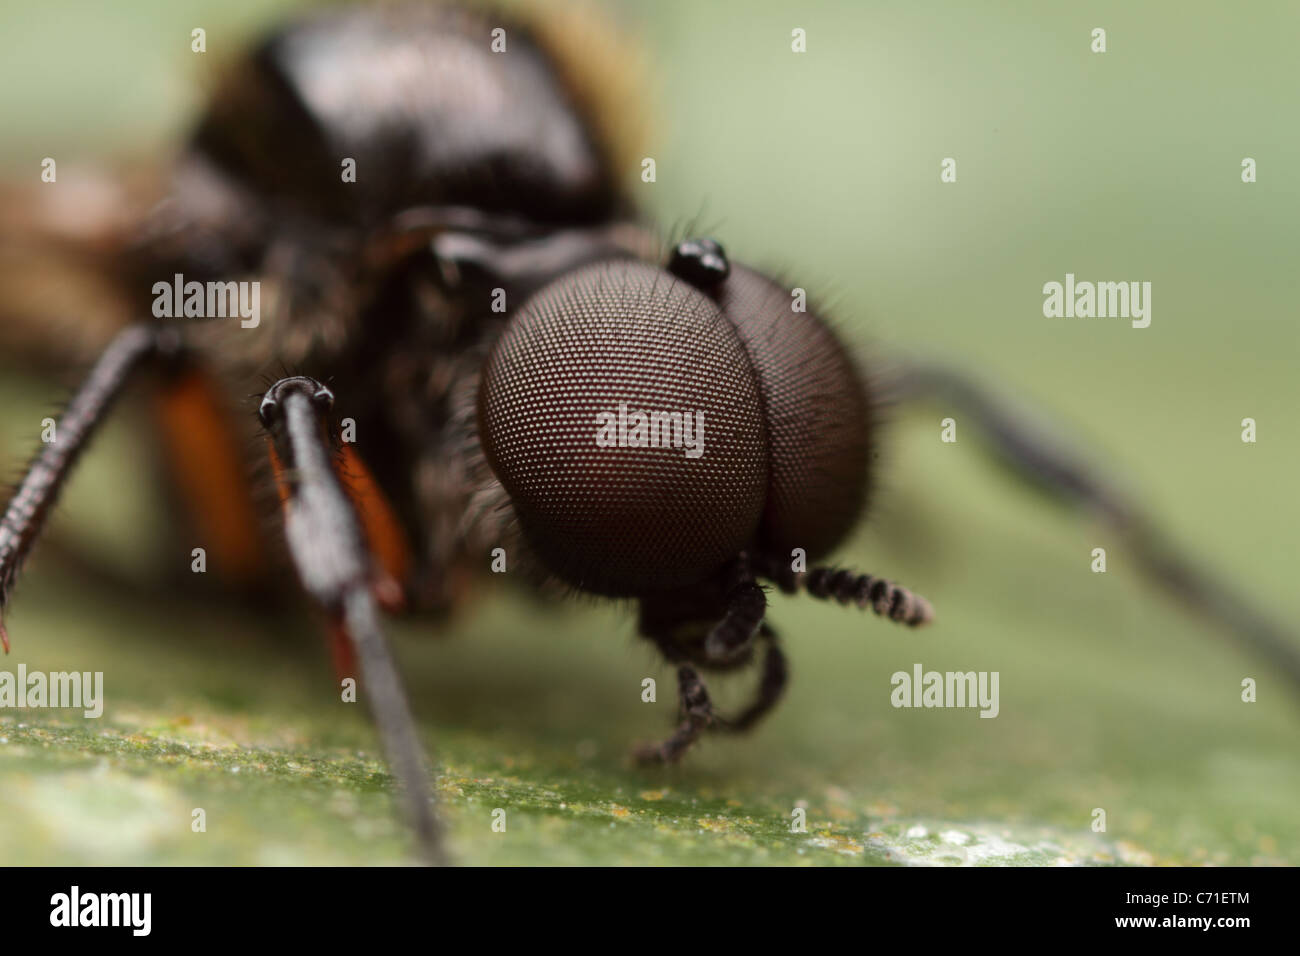 Compound eyes of a march fly - Stock Image